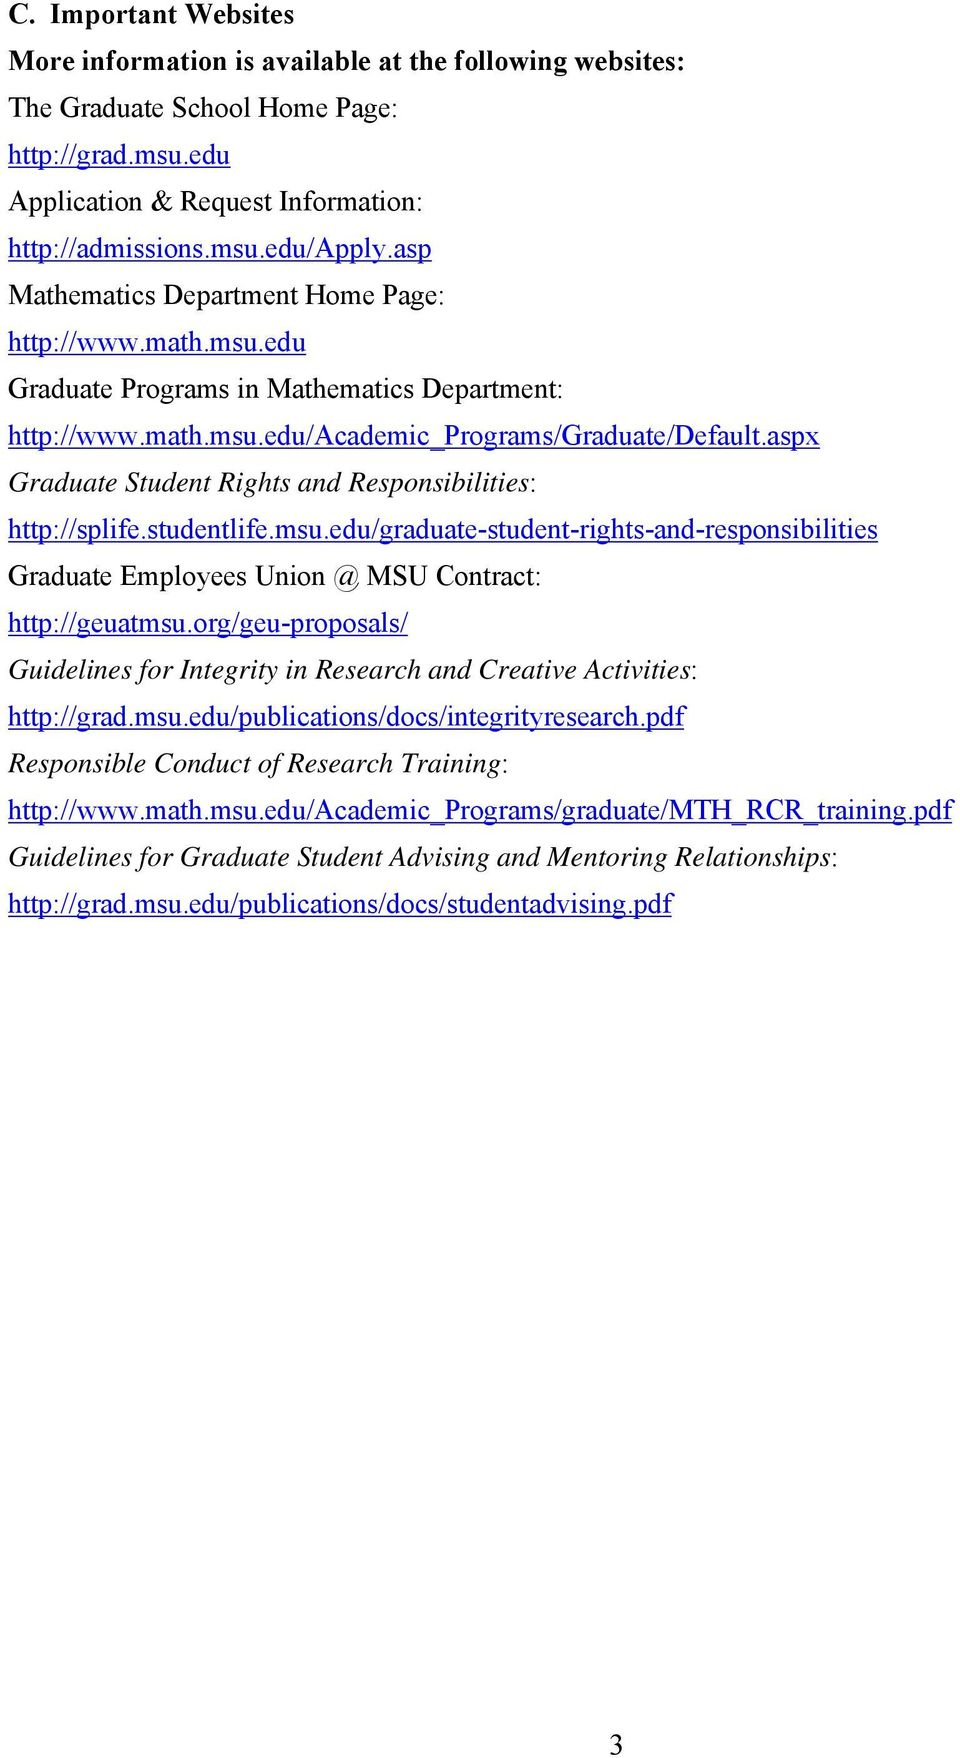 aspx Graduate Student Rights and Responsibilities: http://splife.studentlife.msu.edu/graduate-student-rights-and-responsibilities Graduate Employees Union @ MSU Contract: http://geuatmsu.